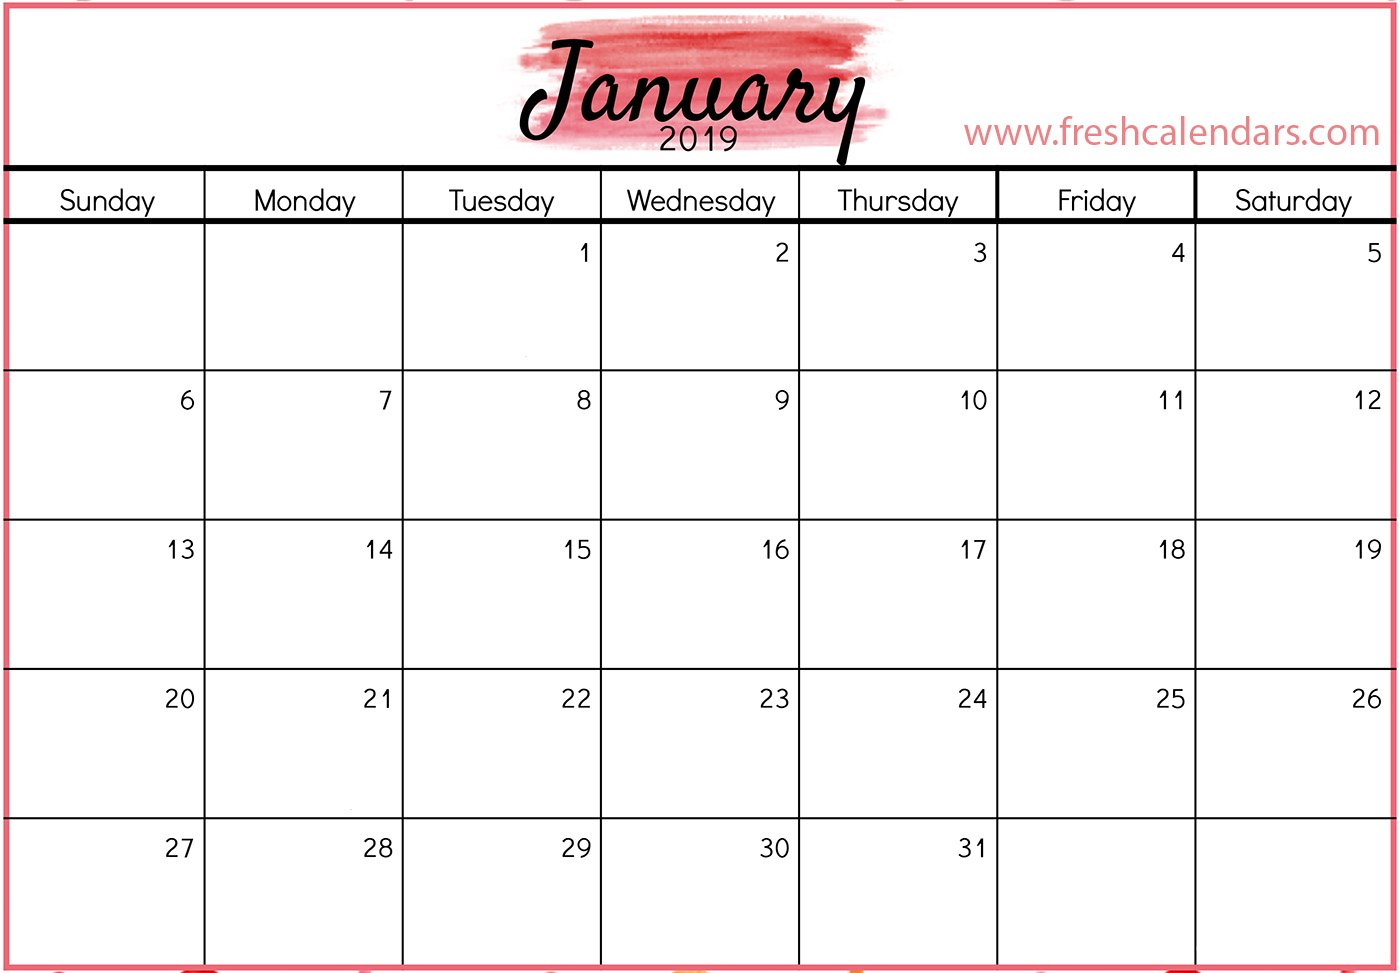 January 2019 Calendar Printable - Fresh Calendars A Calendar For January 2019